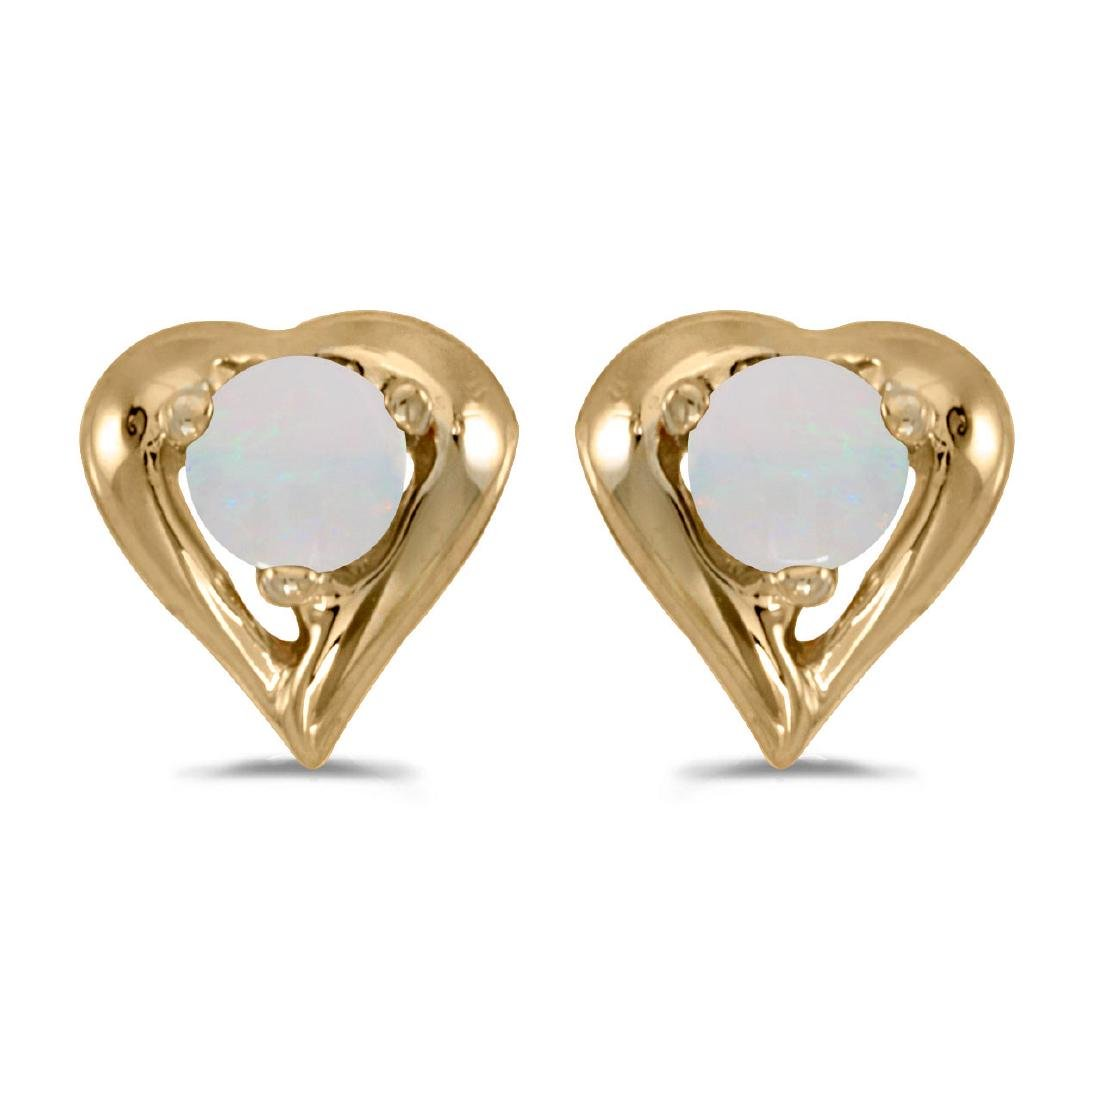 Certified 10k Yellow Gold Round Opal Heart Earrings 0.0